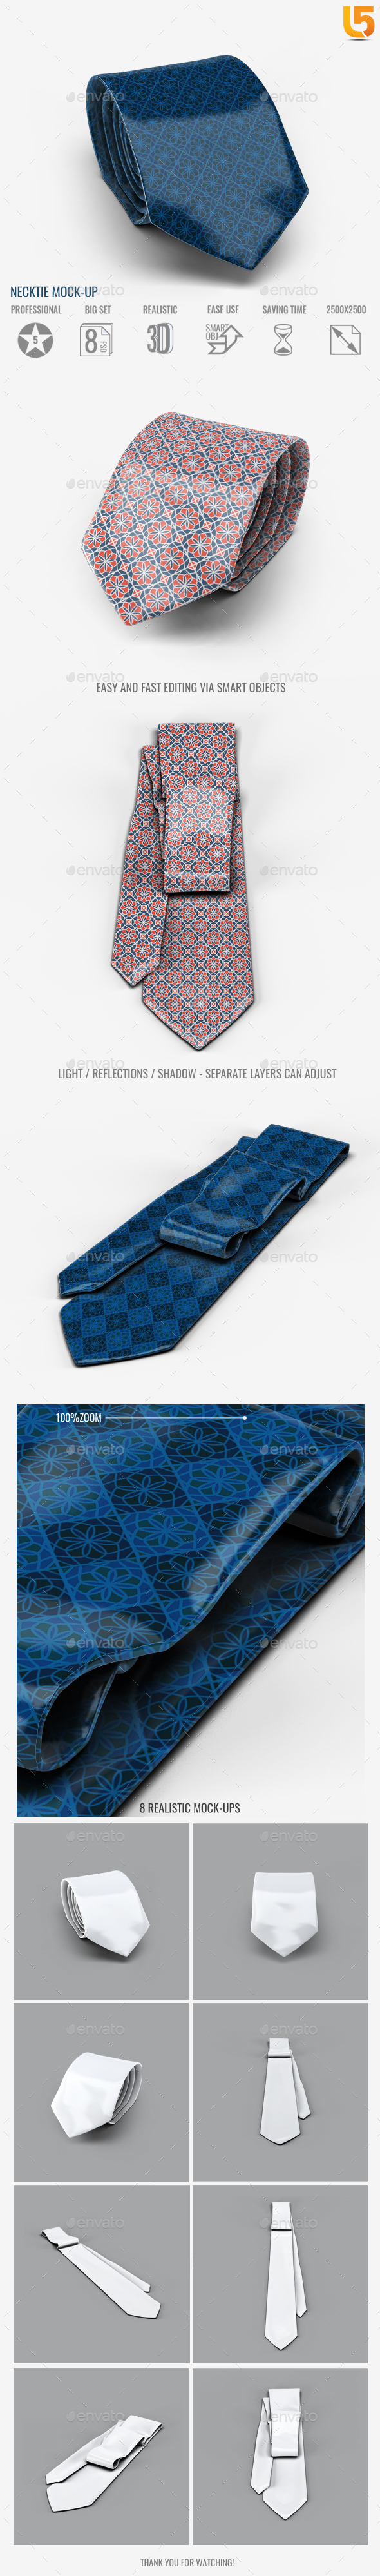 GraphicRiver Necktie Mock-Up 20413212